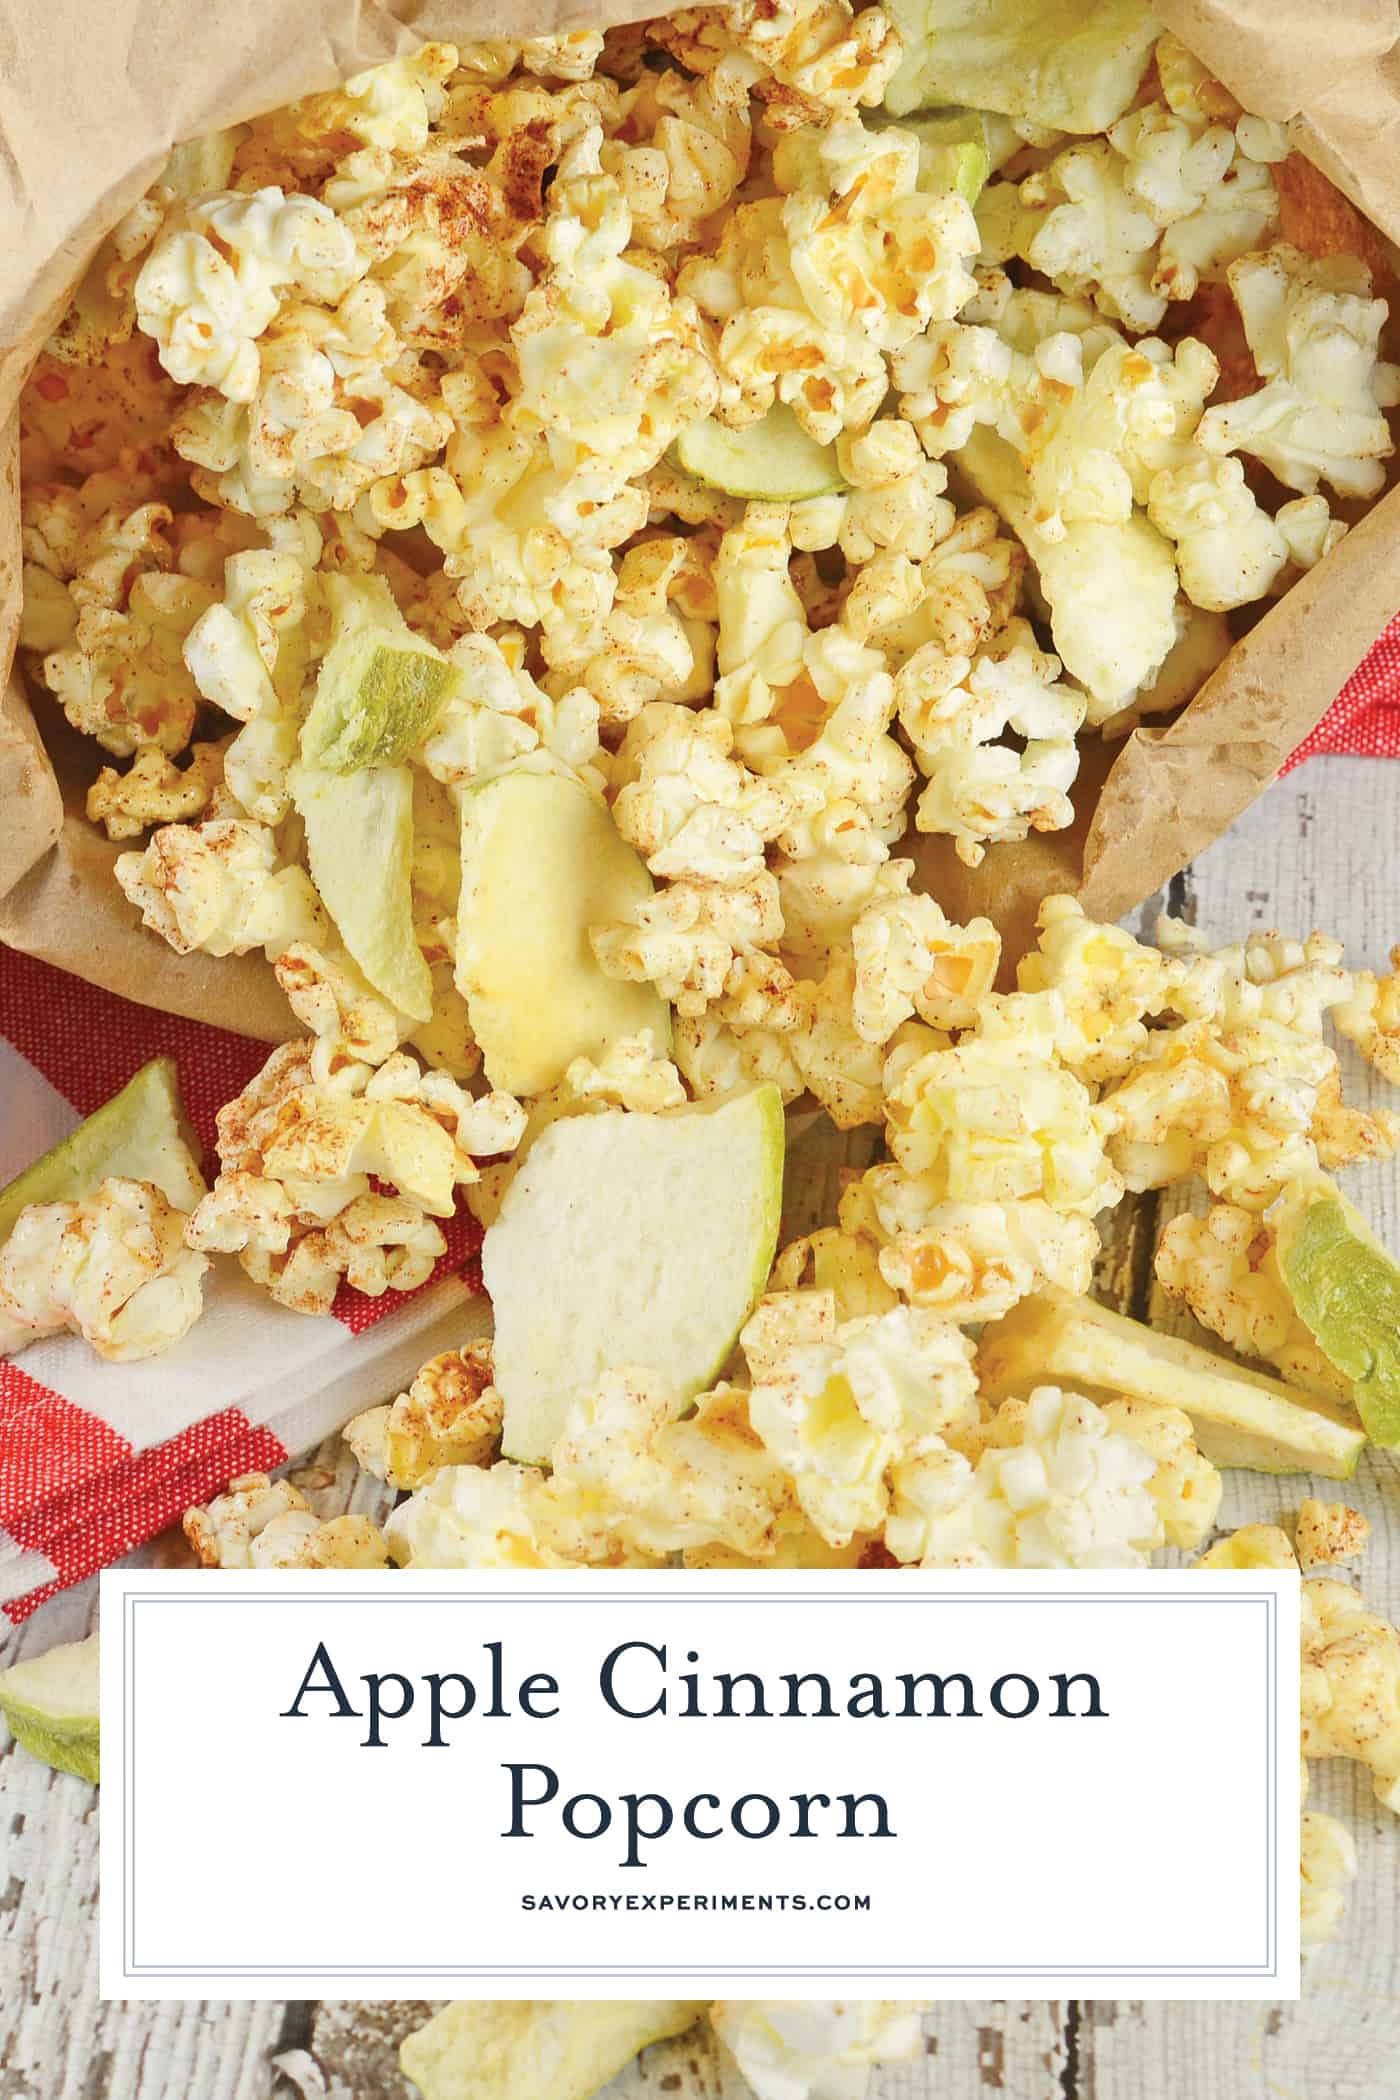 Apple Cinnamon Popcorn is a great way to enjoy popcorn as a dessert or snack. Tossed with apple chips, honey, cinnamon and vanilla, you will crave this popcorn seasoning every day! #gourmetpopcorn #popcornrecipes www.savoryexperiments.com